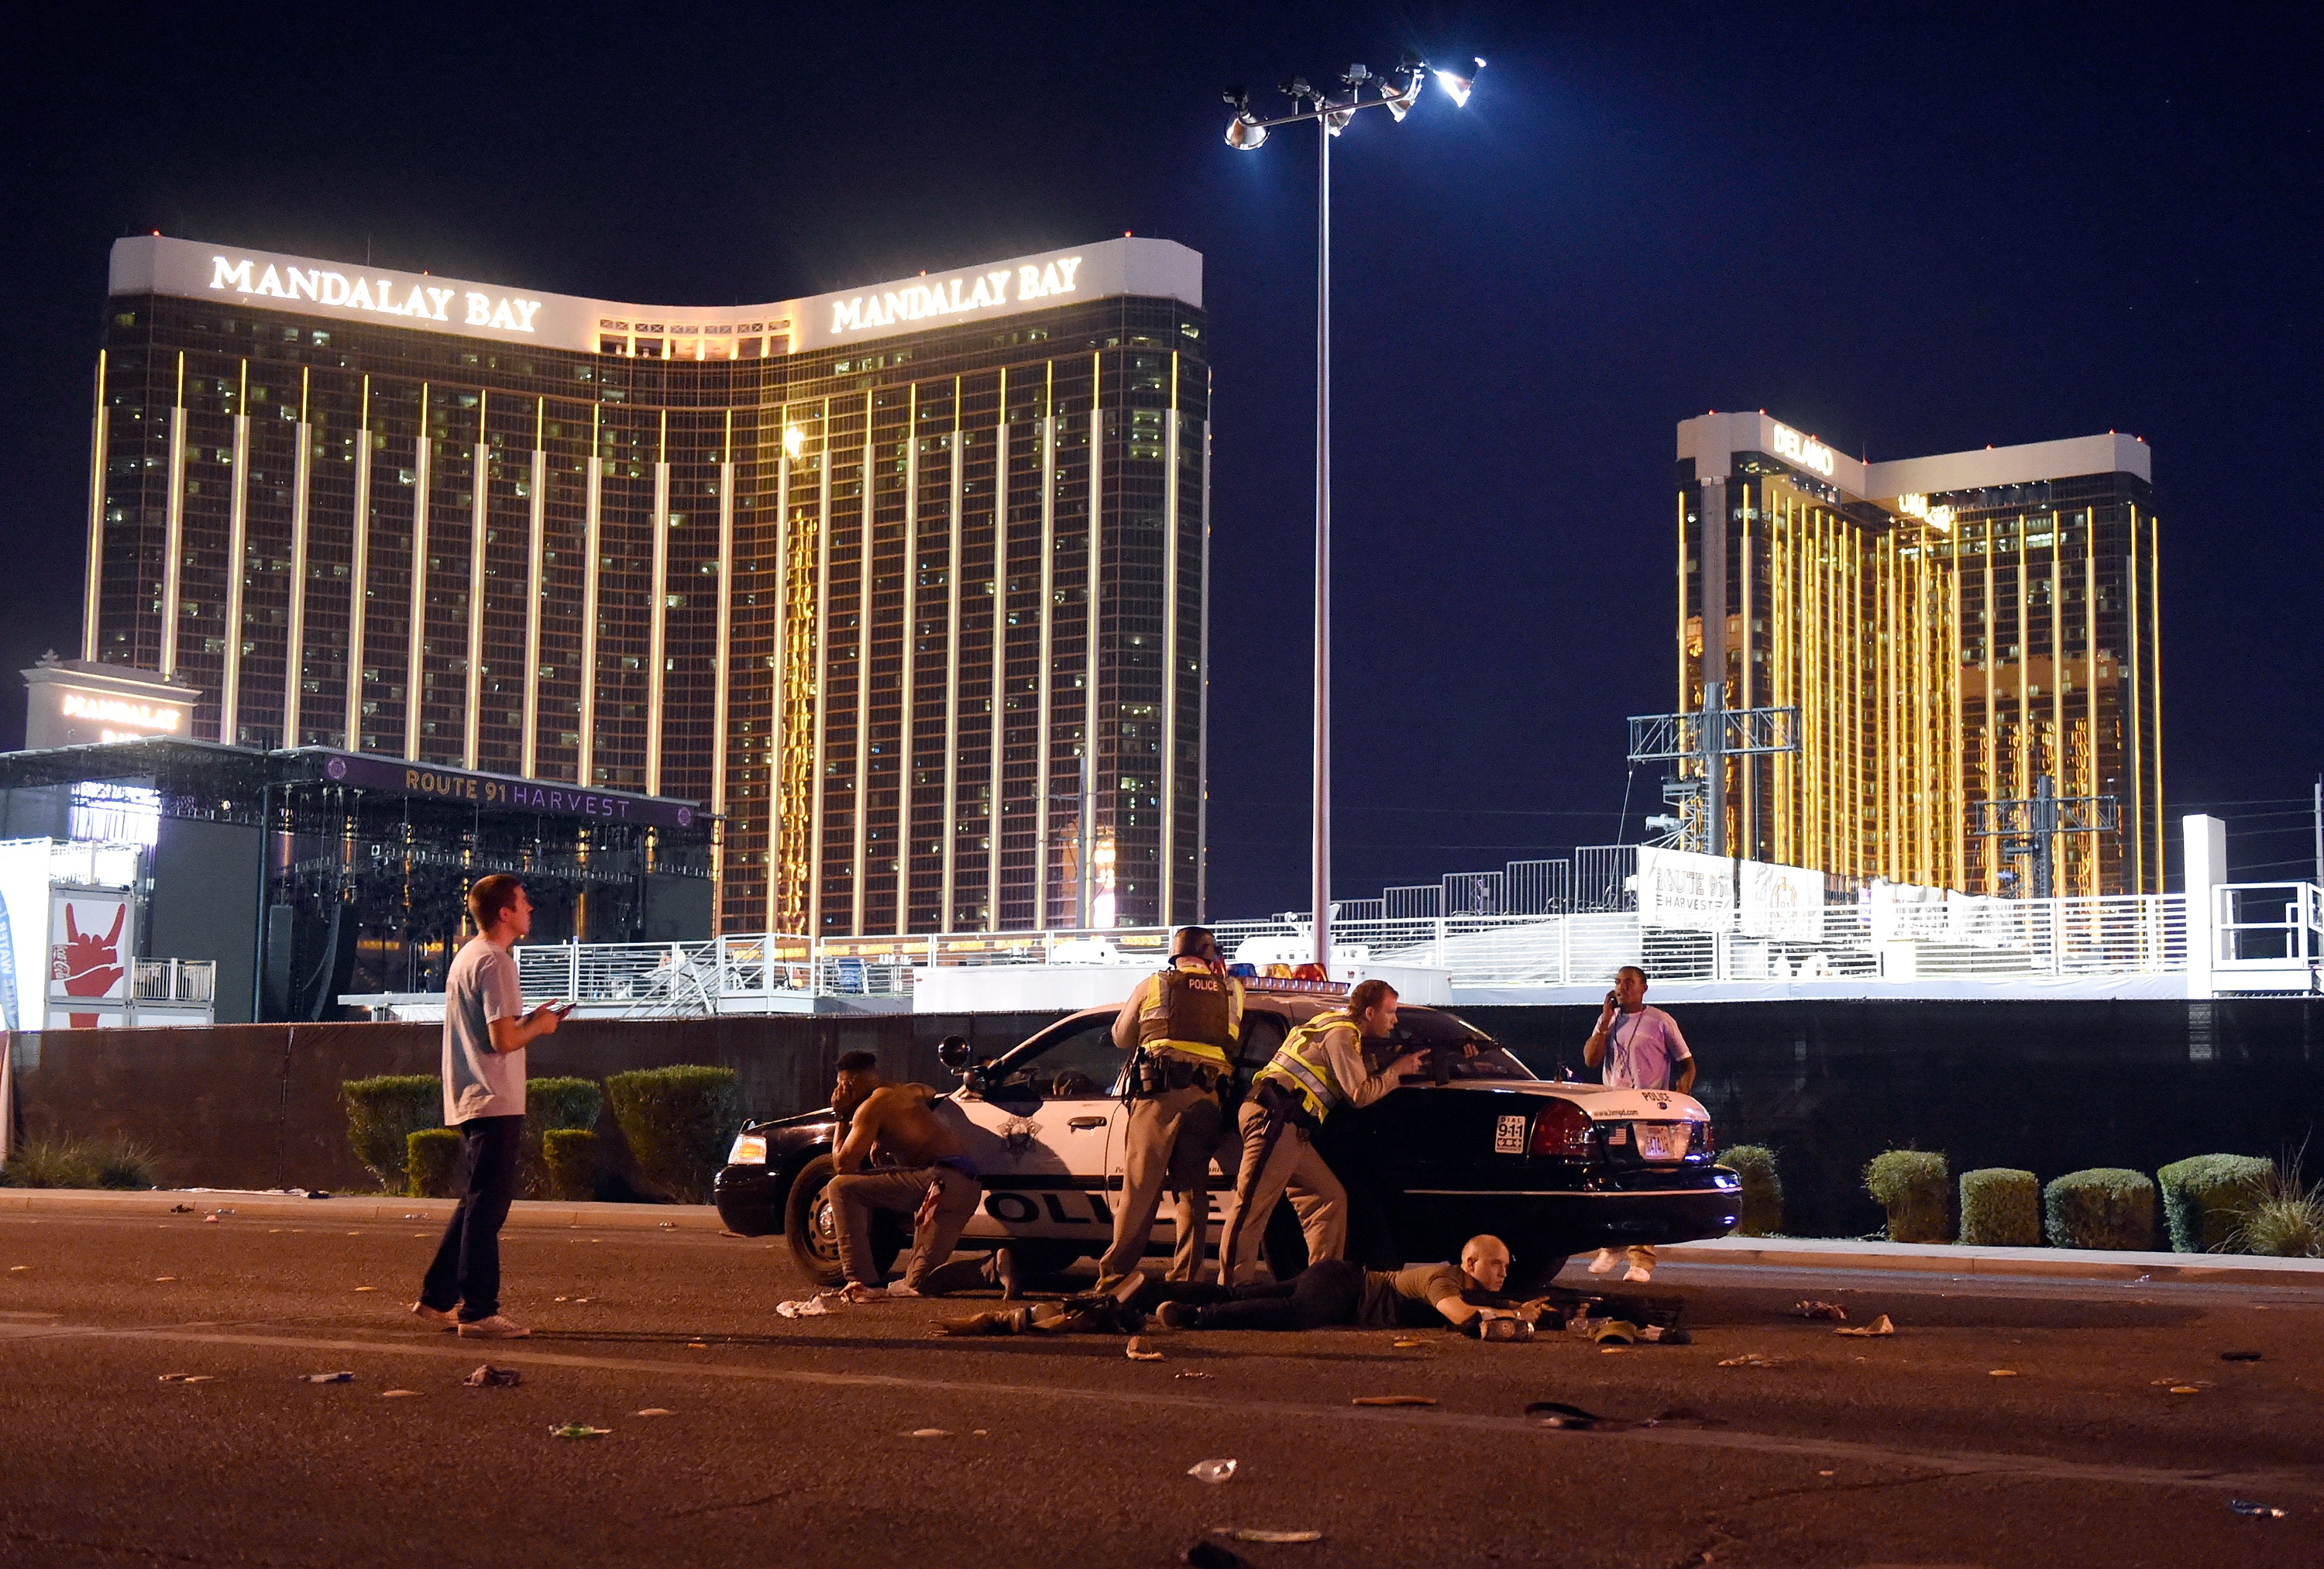 Las Vegas police stand guard along the streets outside the Route 91 Harvest Country music festival grounds of the Route 91 Harvest on October 1, 2017 in Las Vegas, Nevada.